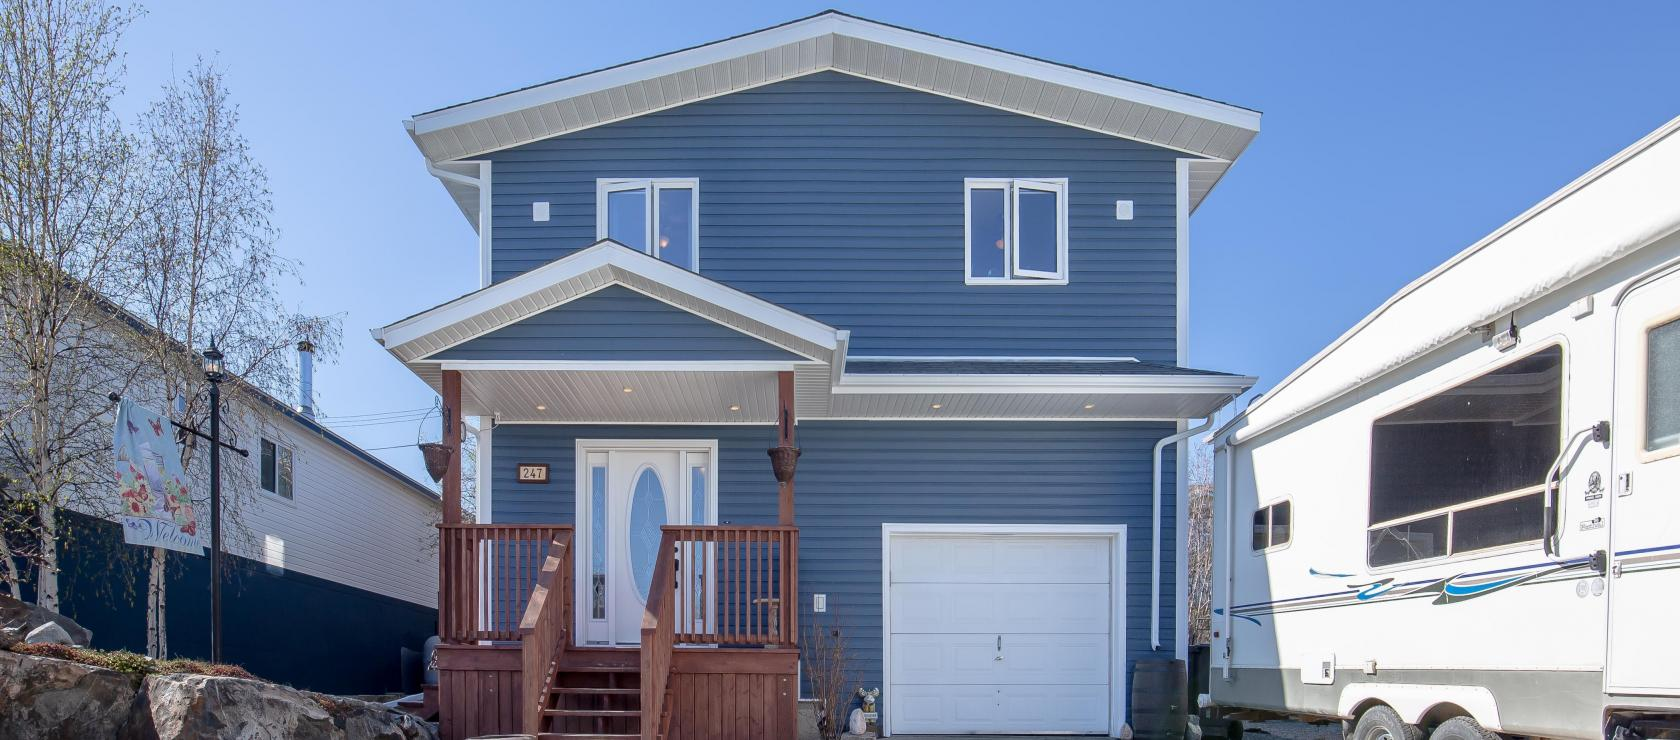 247 Borden Drive, Range Lake, Yellowknife 2